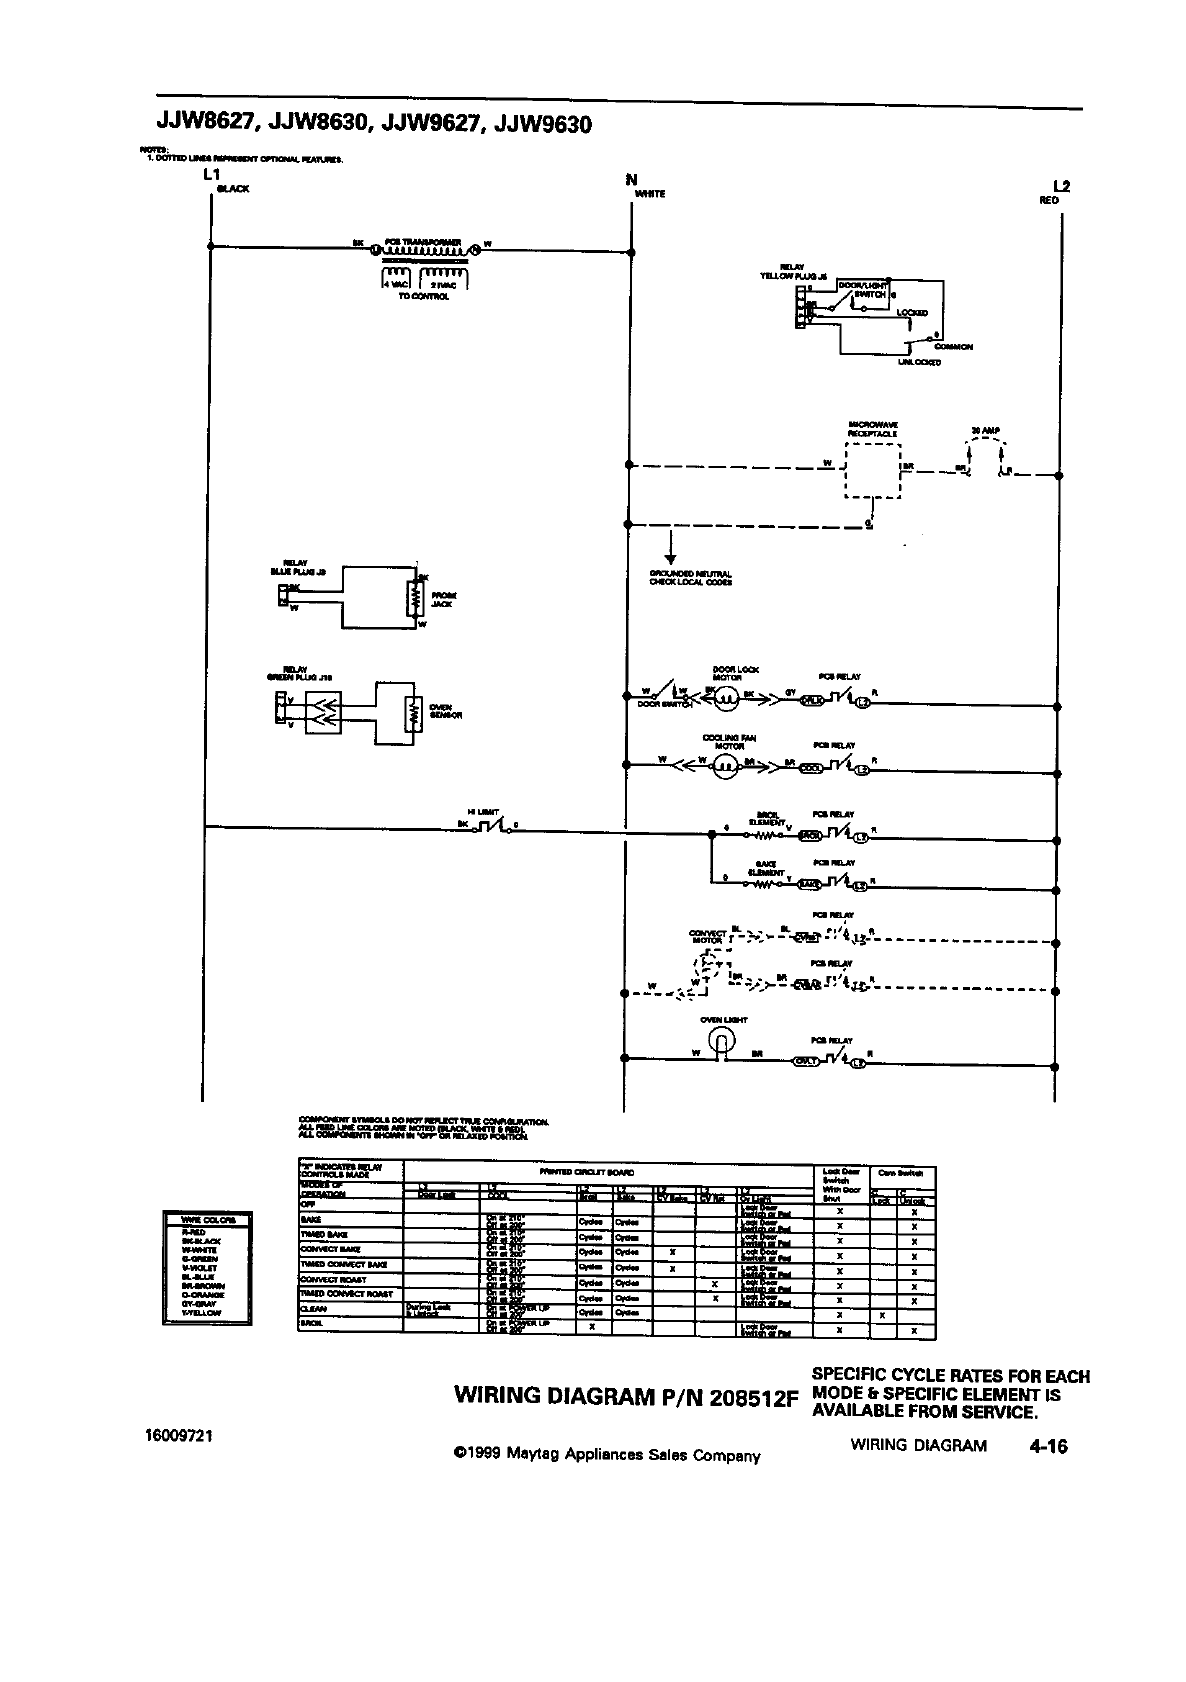 52b2f415 78fa 4259 88c0 be210120d02a bg30 page 48 of jenn air oven w30100 user guide manualsonline com Basic Electrical Wiring Diagrams at edmiracle.co